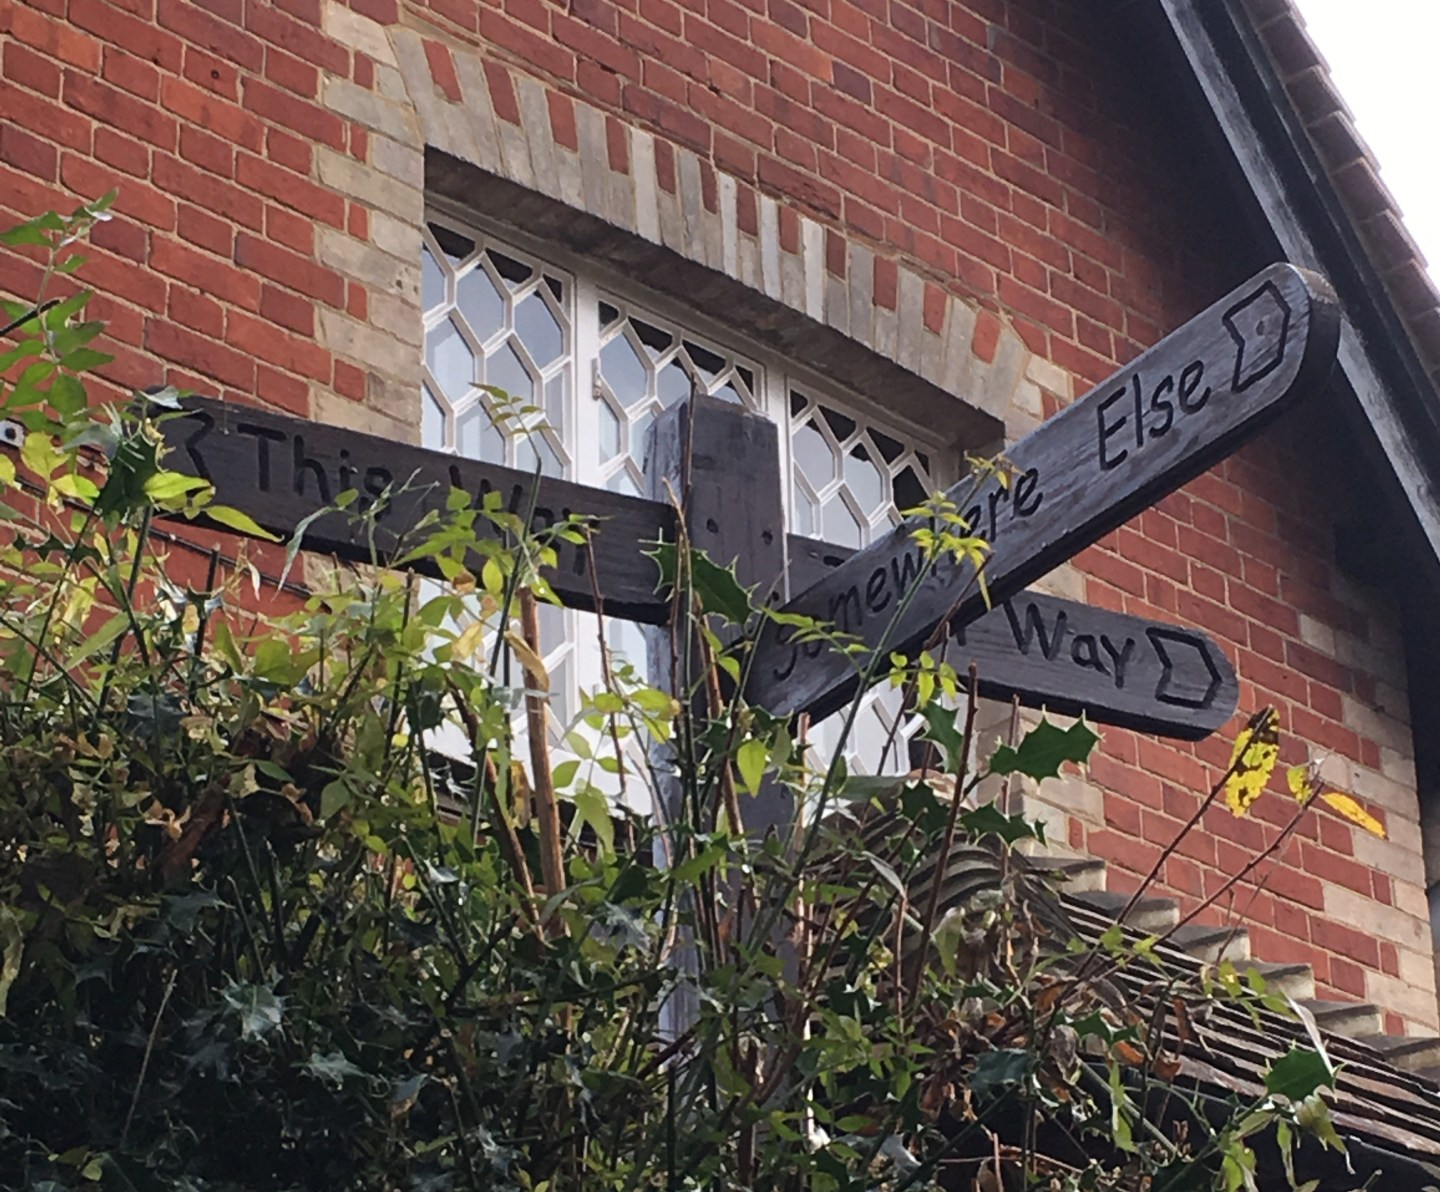 Shere-sign-post.jpg